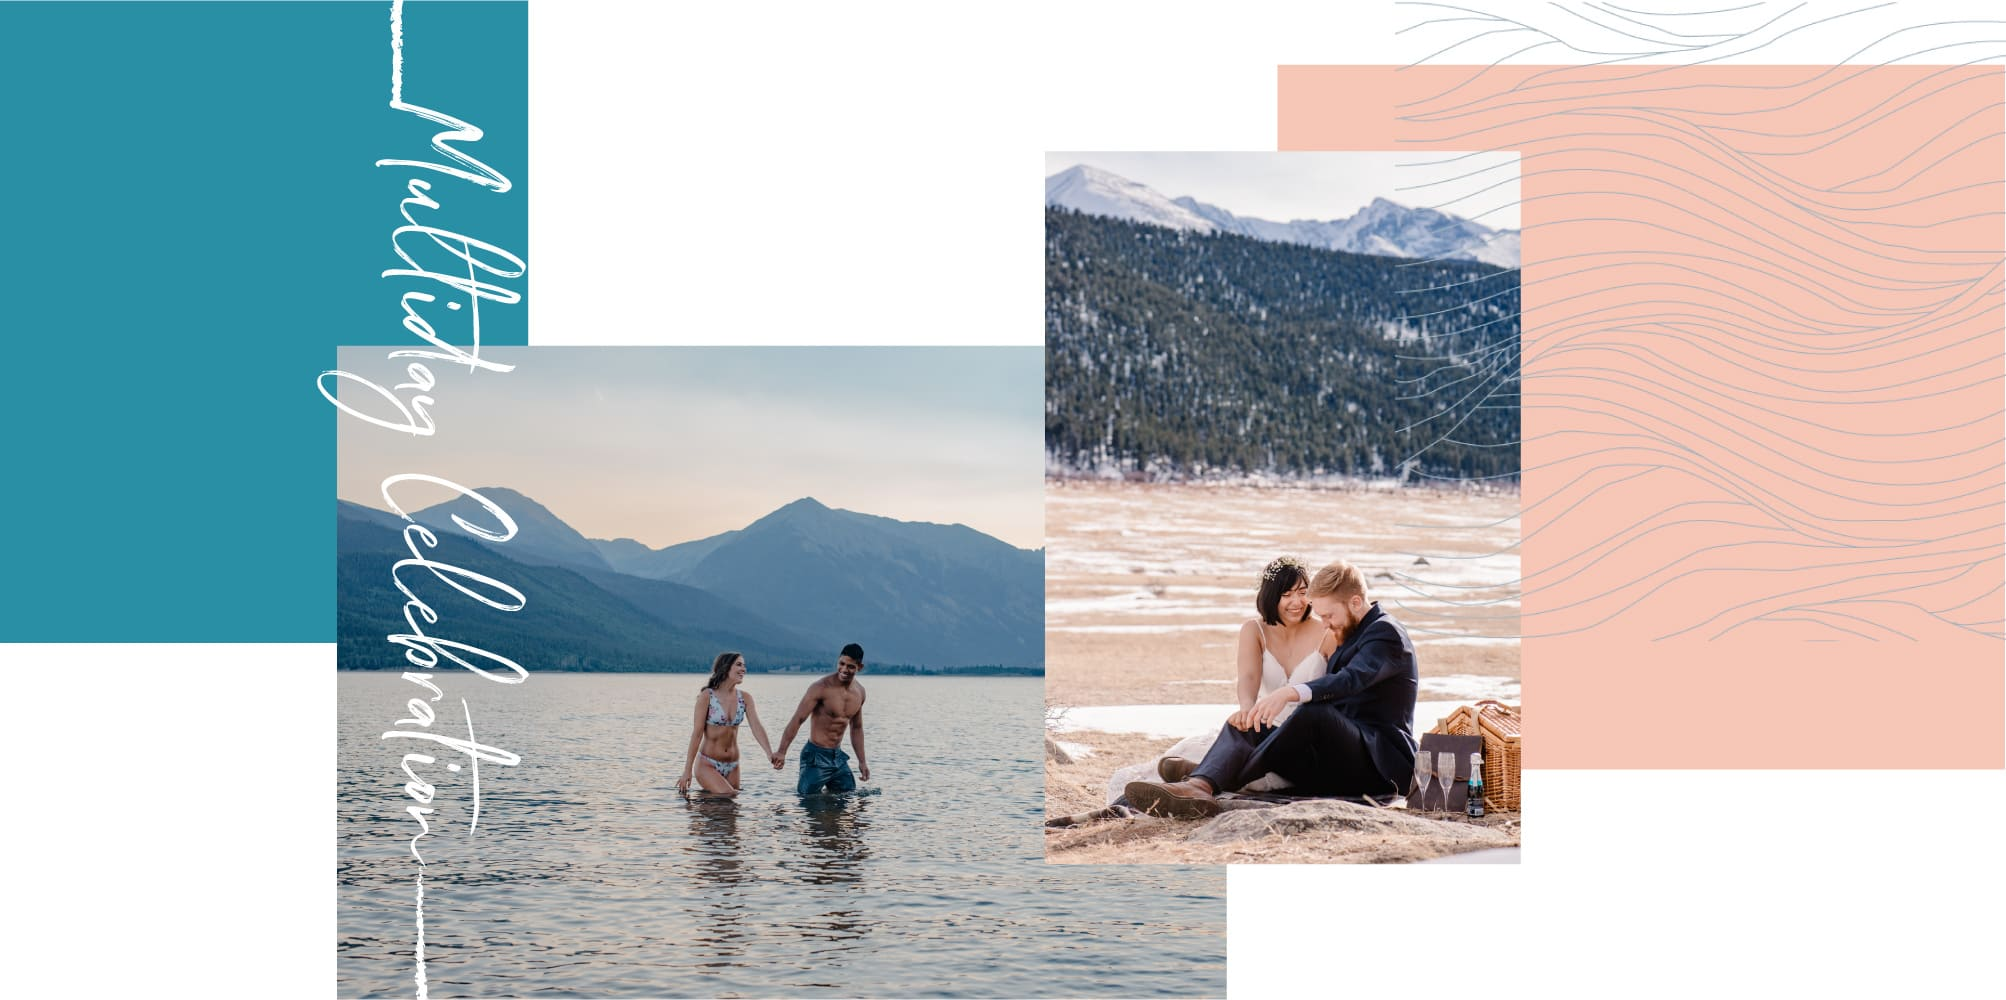 couple wading in alpine lake in colorado and couple having a picnic in oregon mountains